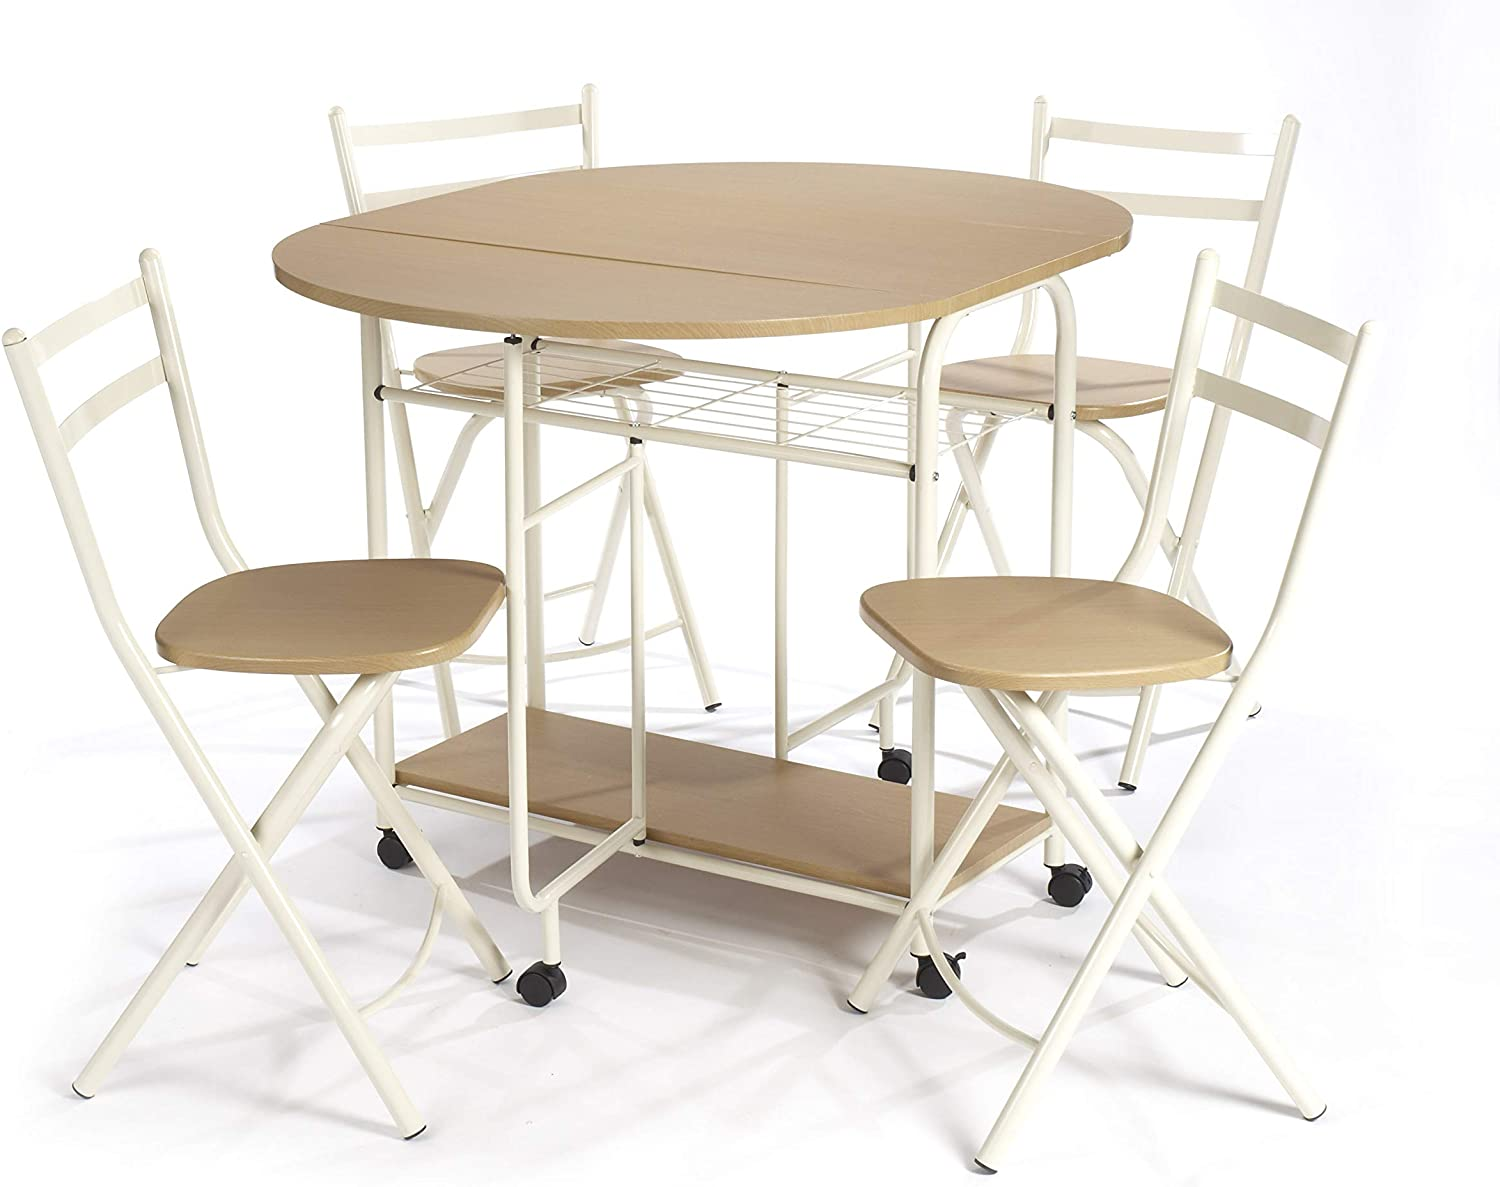 - Greenhurst Folding Dining Table And Chairs: Dining Table With